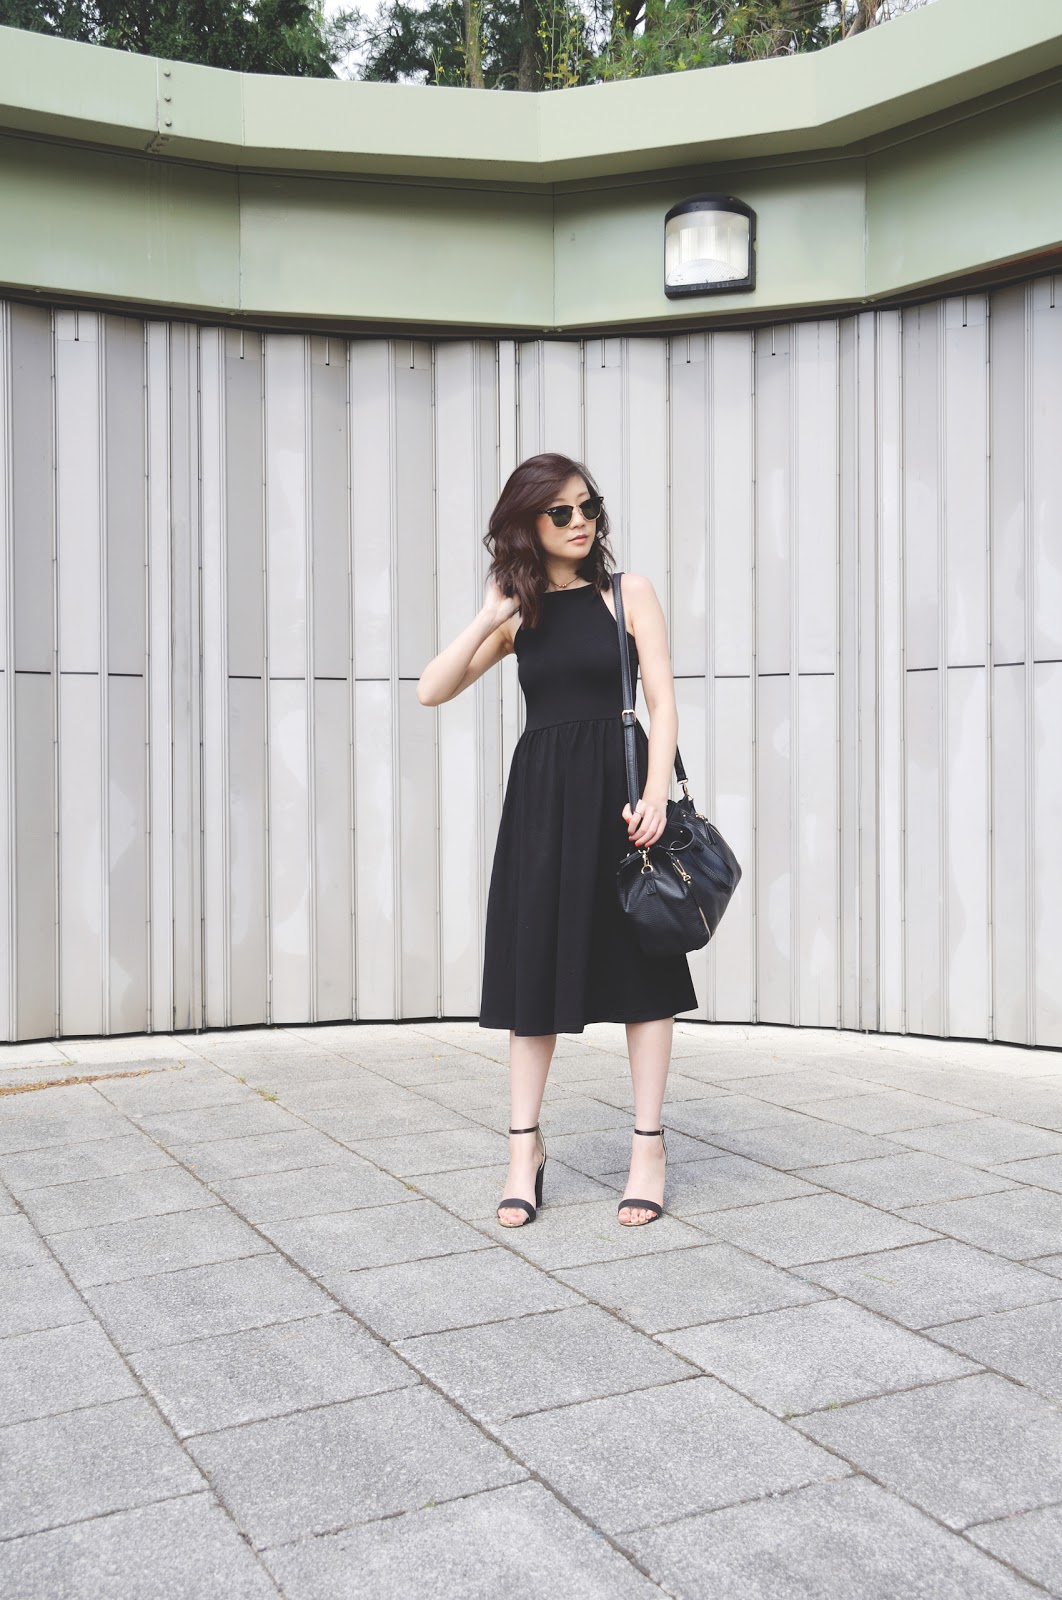 How To Style: 90's Style Black Dress